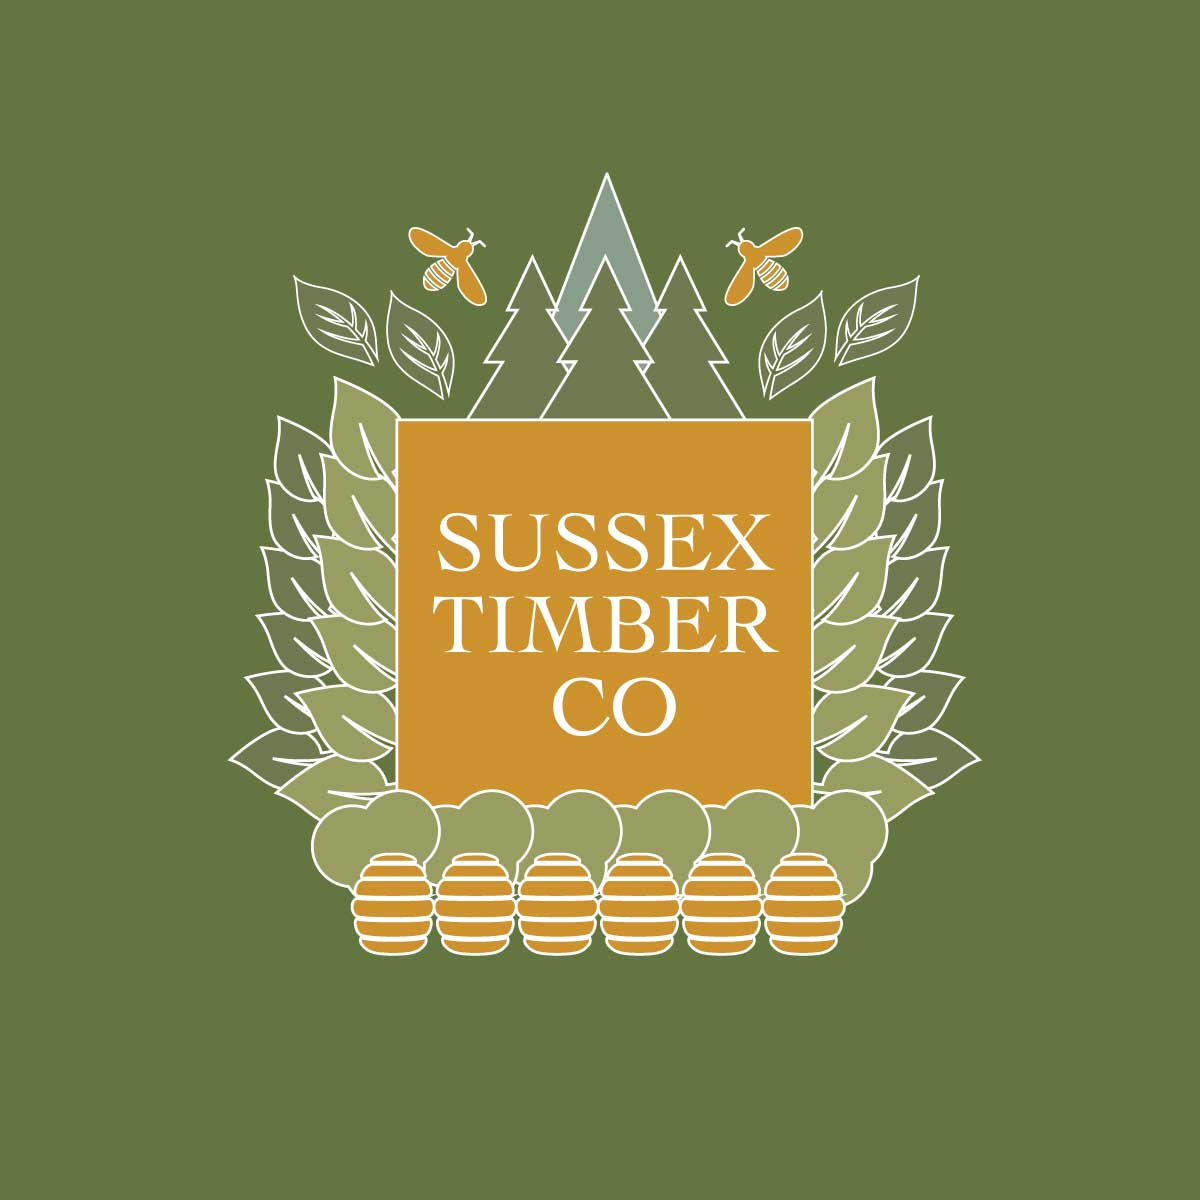 Sussex-Timber-Co-Logo-2